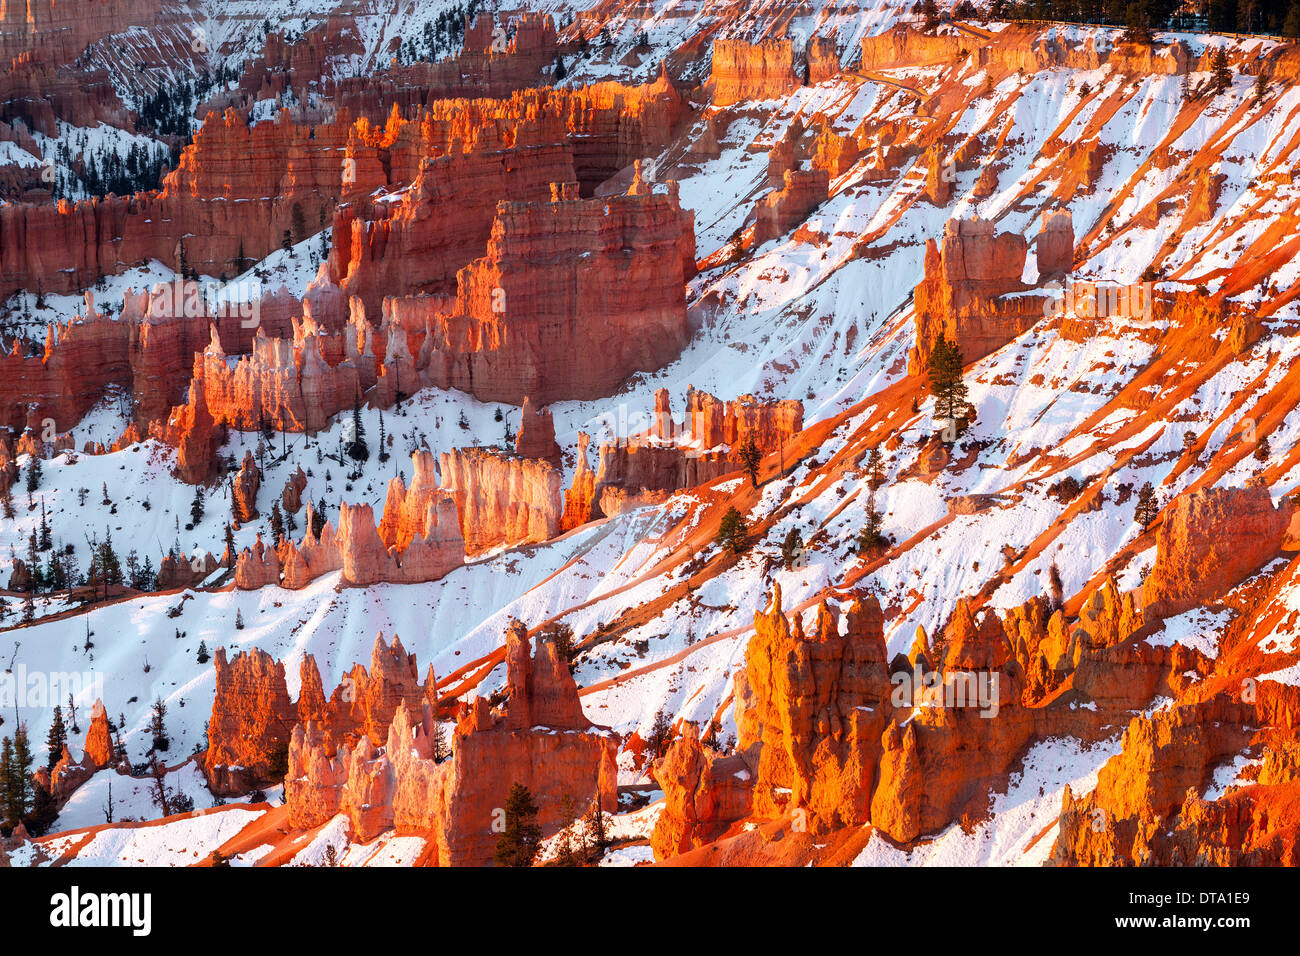 Winter-Sonnenaufgang in Bryce-Canyon-Nationalpark, Utah - USA Stockbild